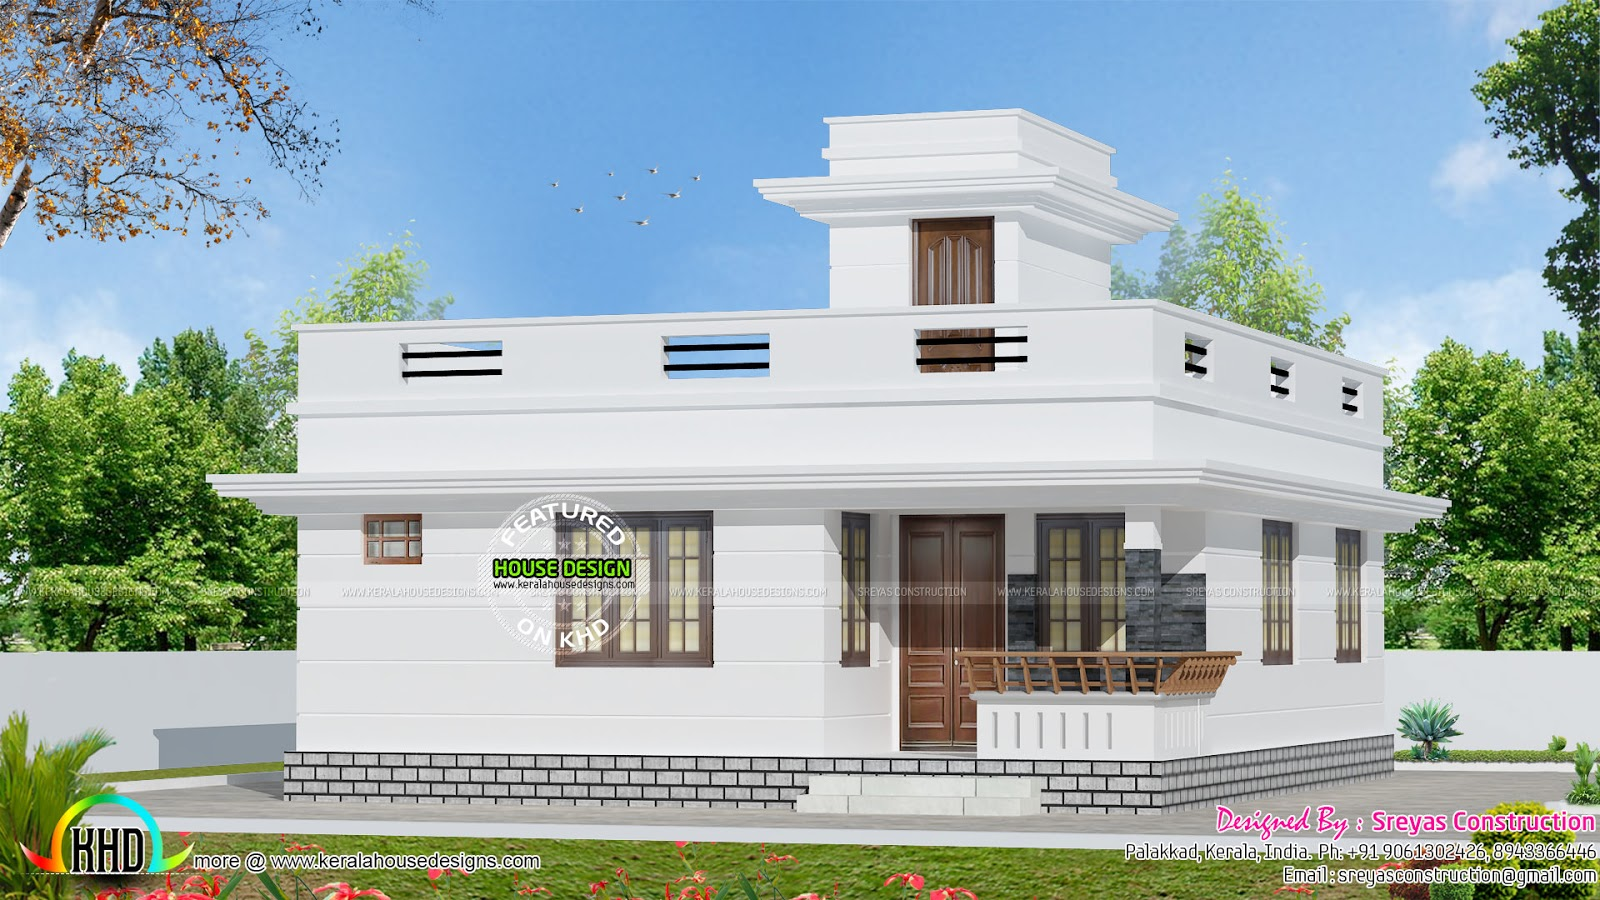 882 sq ft small house architecture kerala home design for Small house design in kerala